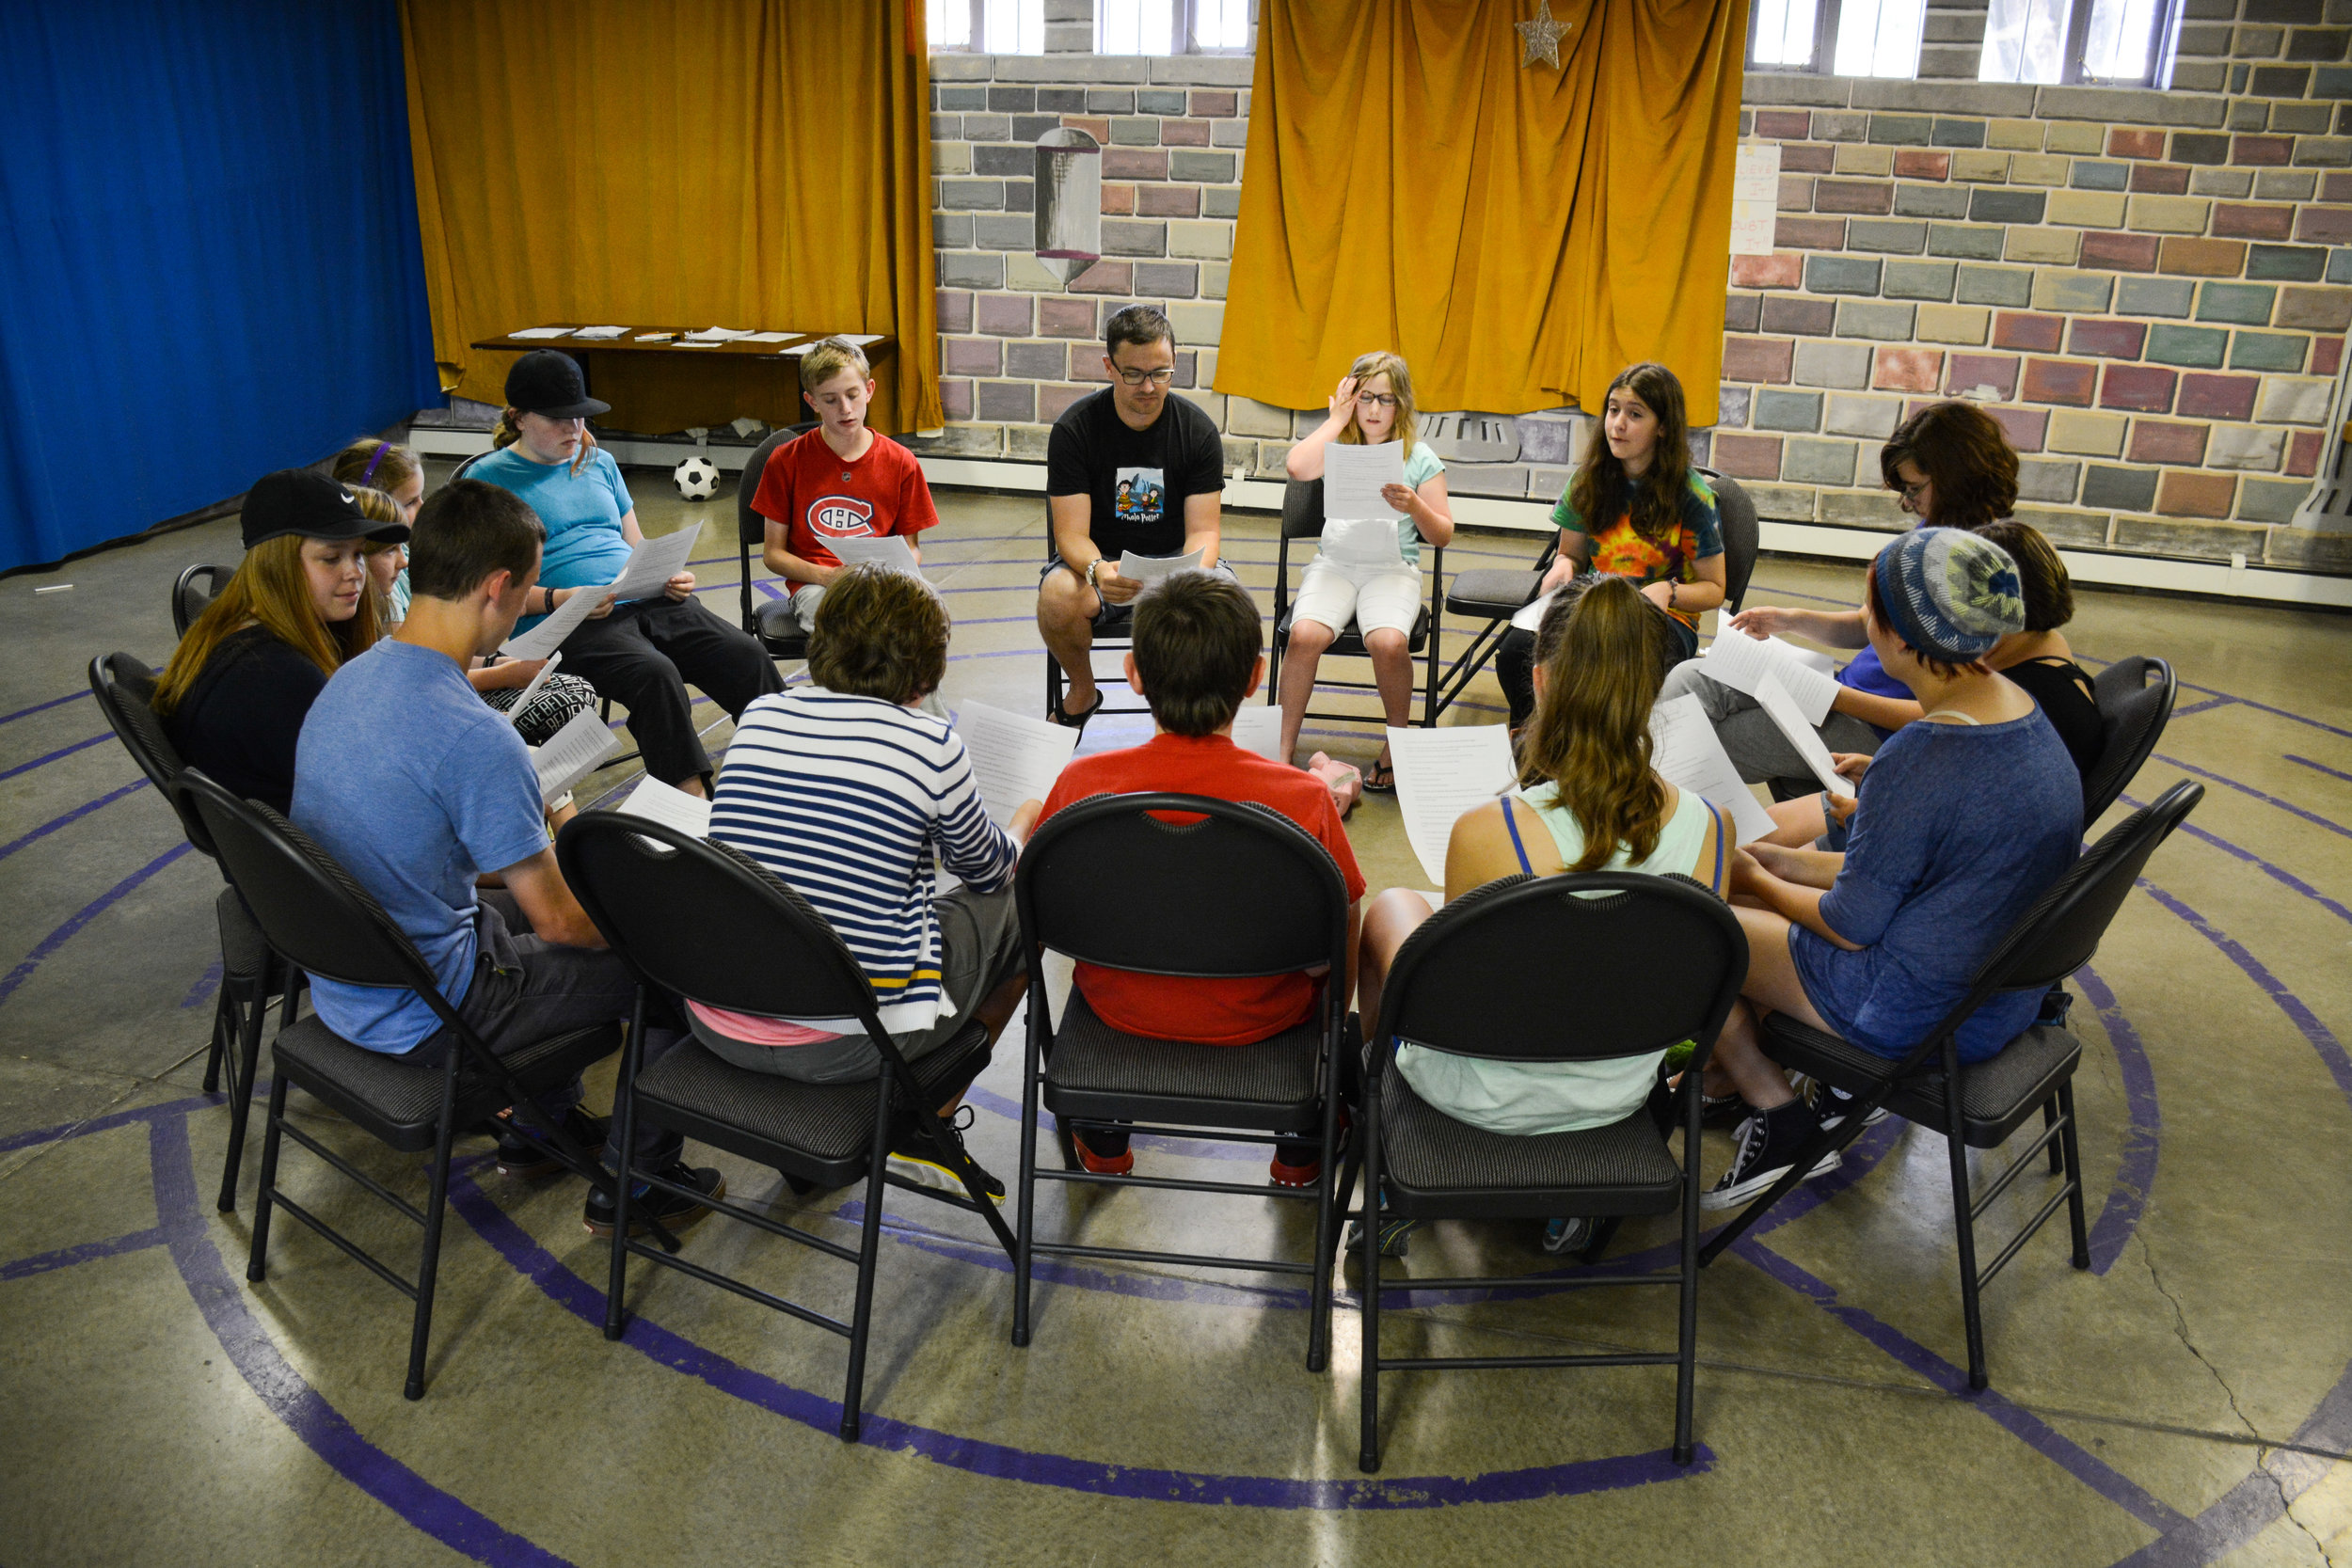 20150715 Quest Summer Camp 1 RW 1116.jpg